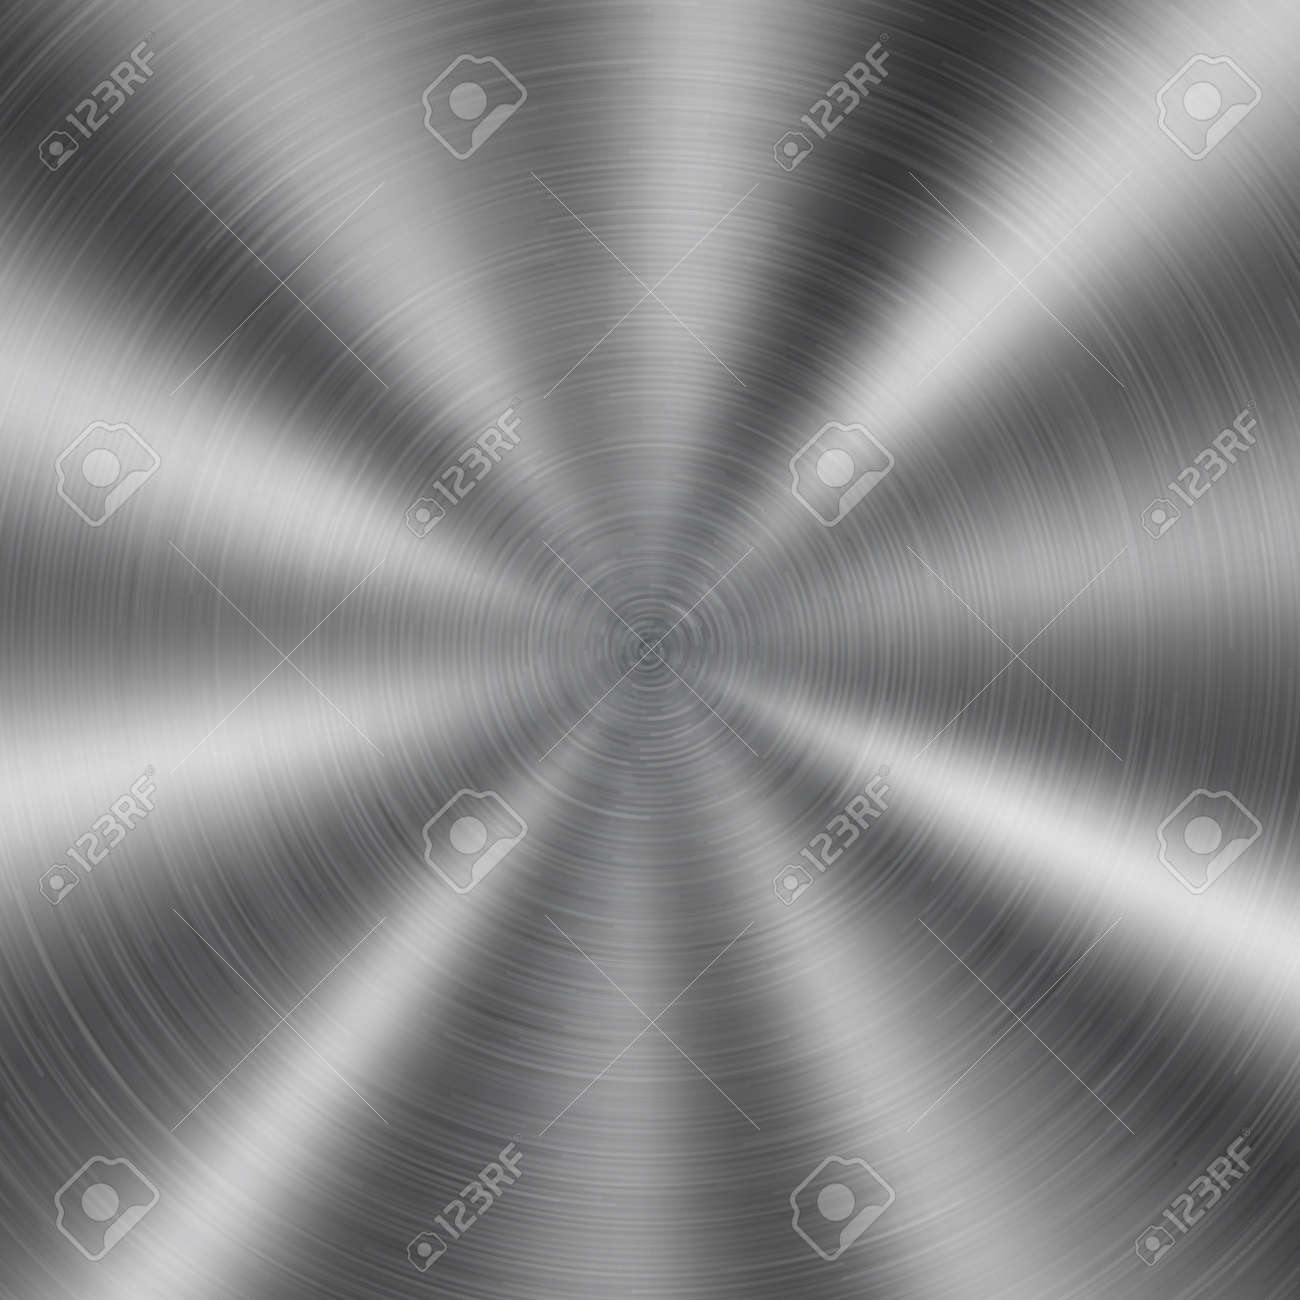 Abstract shiny metal background with circular brushed texture in silver color - 134570469